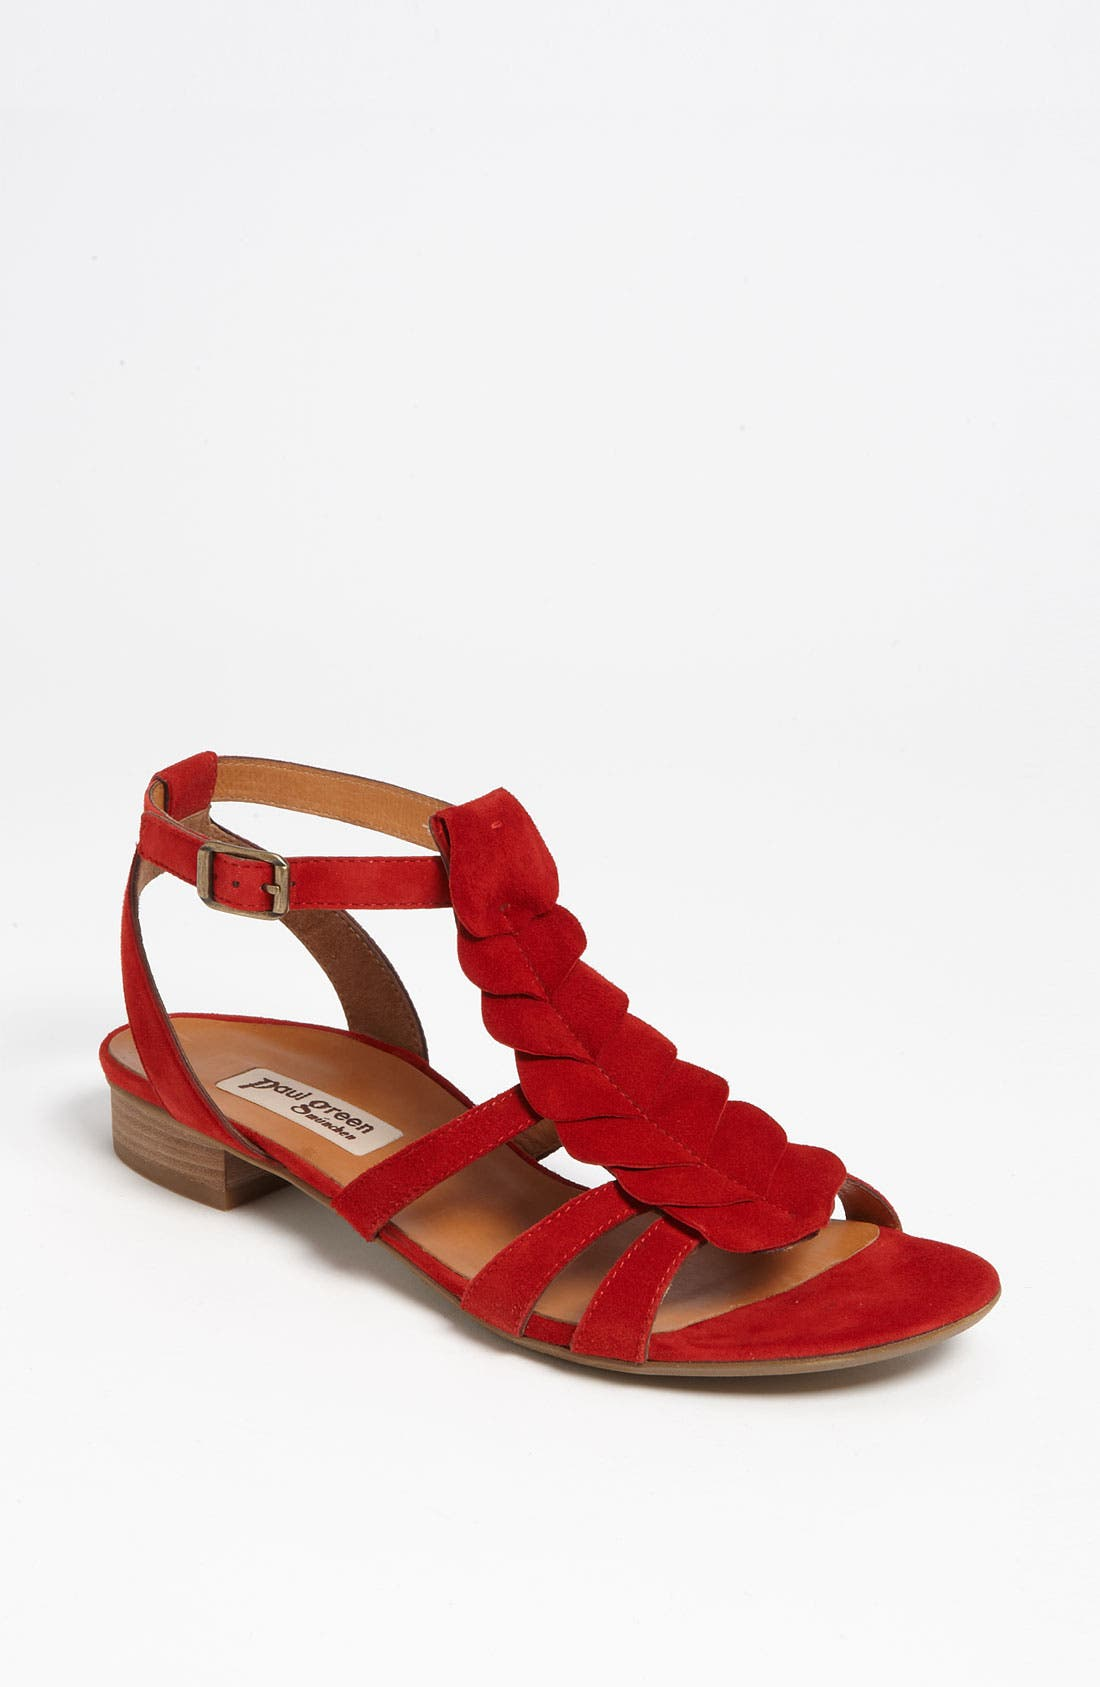 Alternate Image 1 Selected - Paul Green 'Lola' Sandal